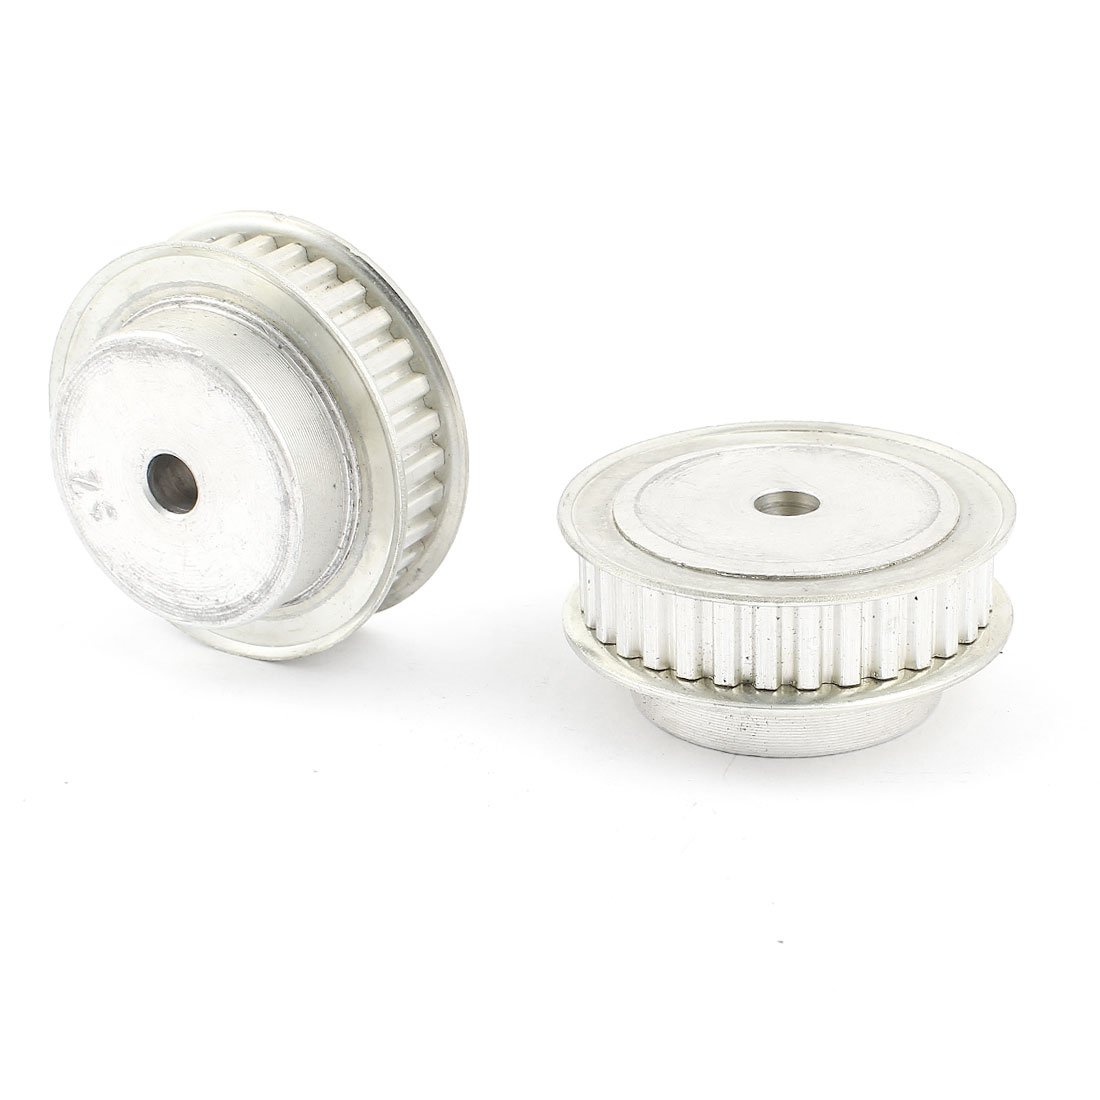 2 Pcs Stainless Steel XL Type 32T 32 Teeth 8mm Diameter Bore Timing Belt Pulley